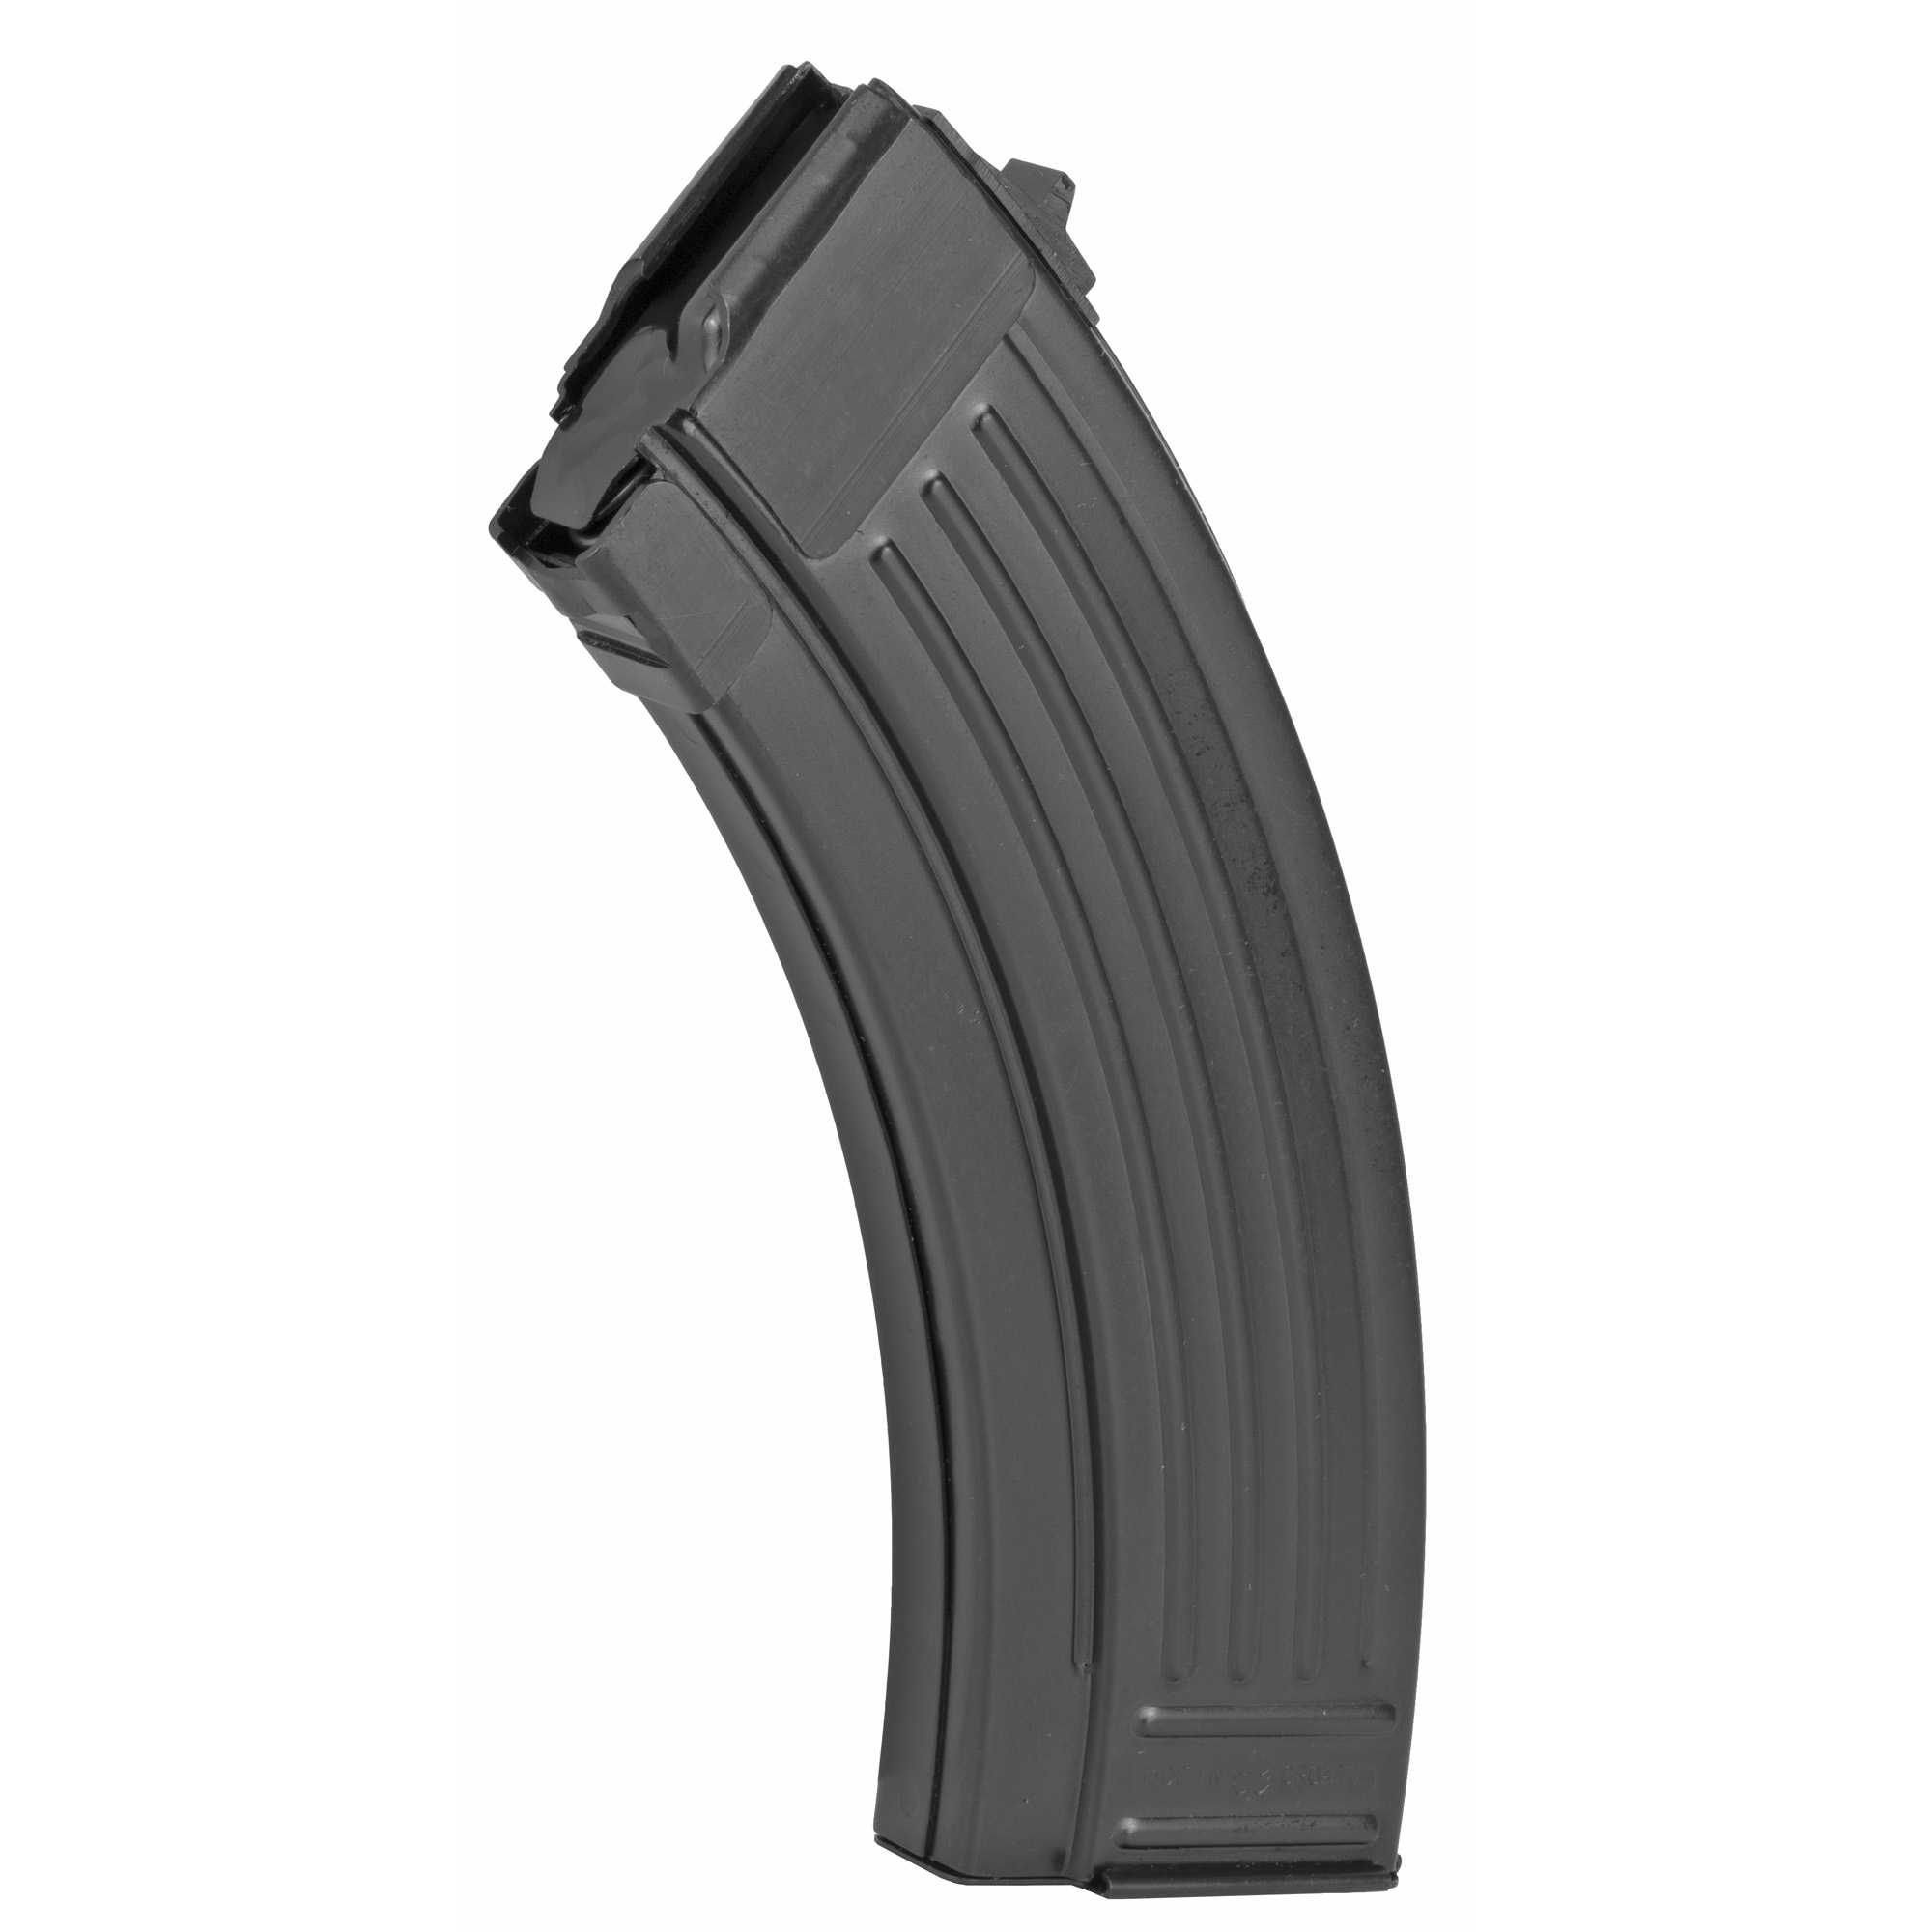 This 30 round steel magazine will fit AK-47 variants and features a high quality spring and follower designed to ensure reliable feeding and operation.